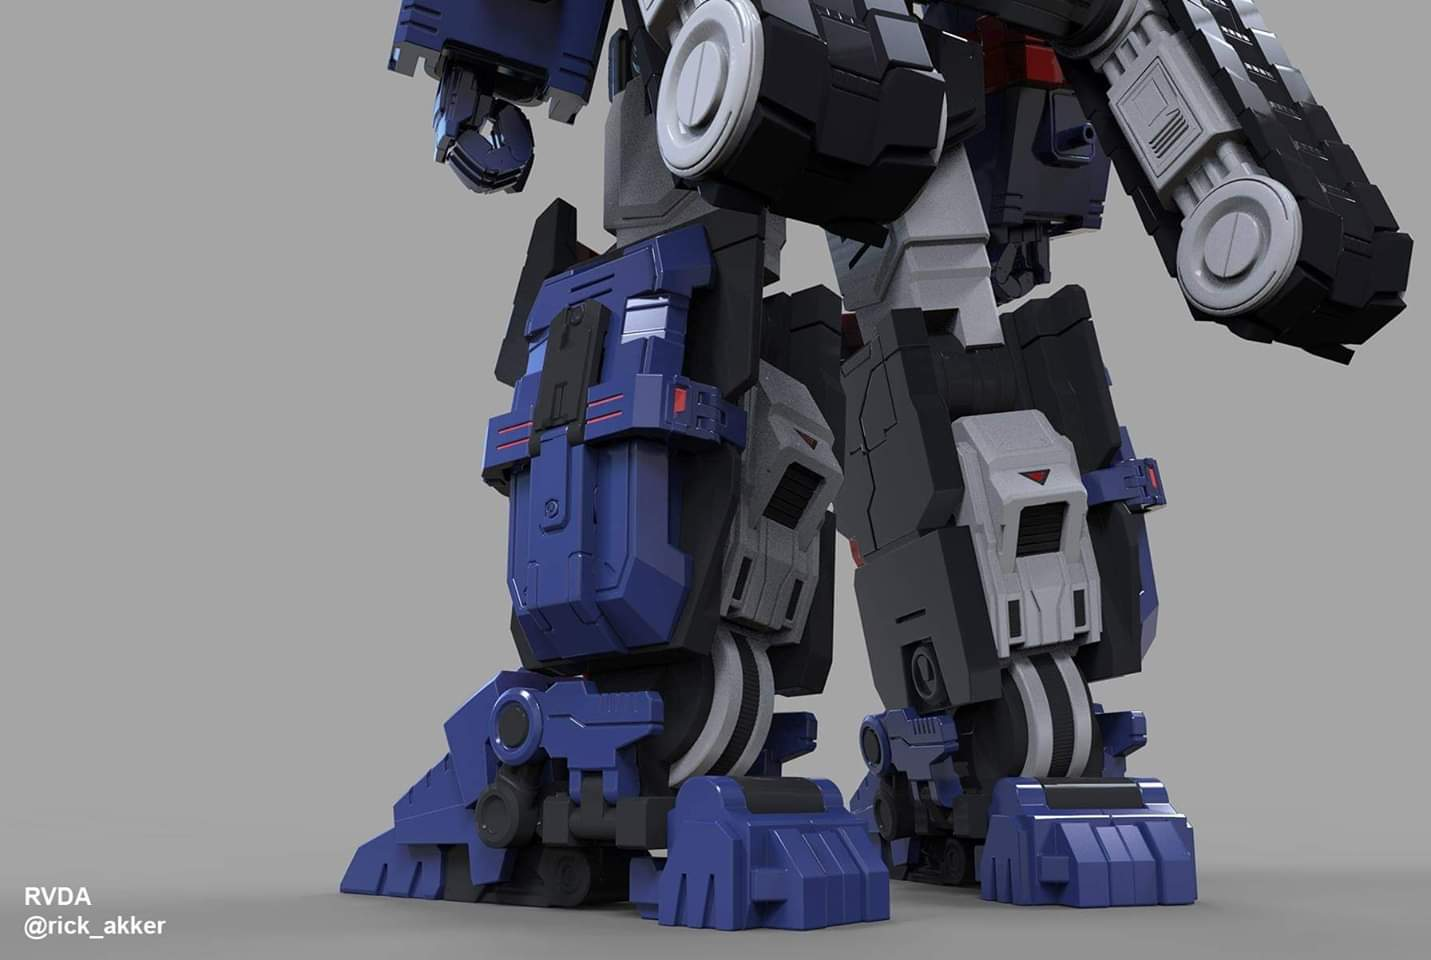 [Mastermind Creations] Produit Tiers - Reformatted R-50 Supermax - aka Fortress/Forteresse Maximus des BD IDW QEOEVGYV_o